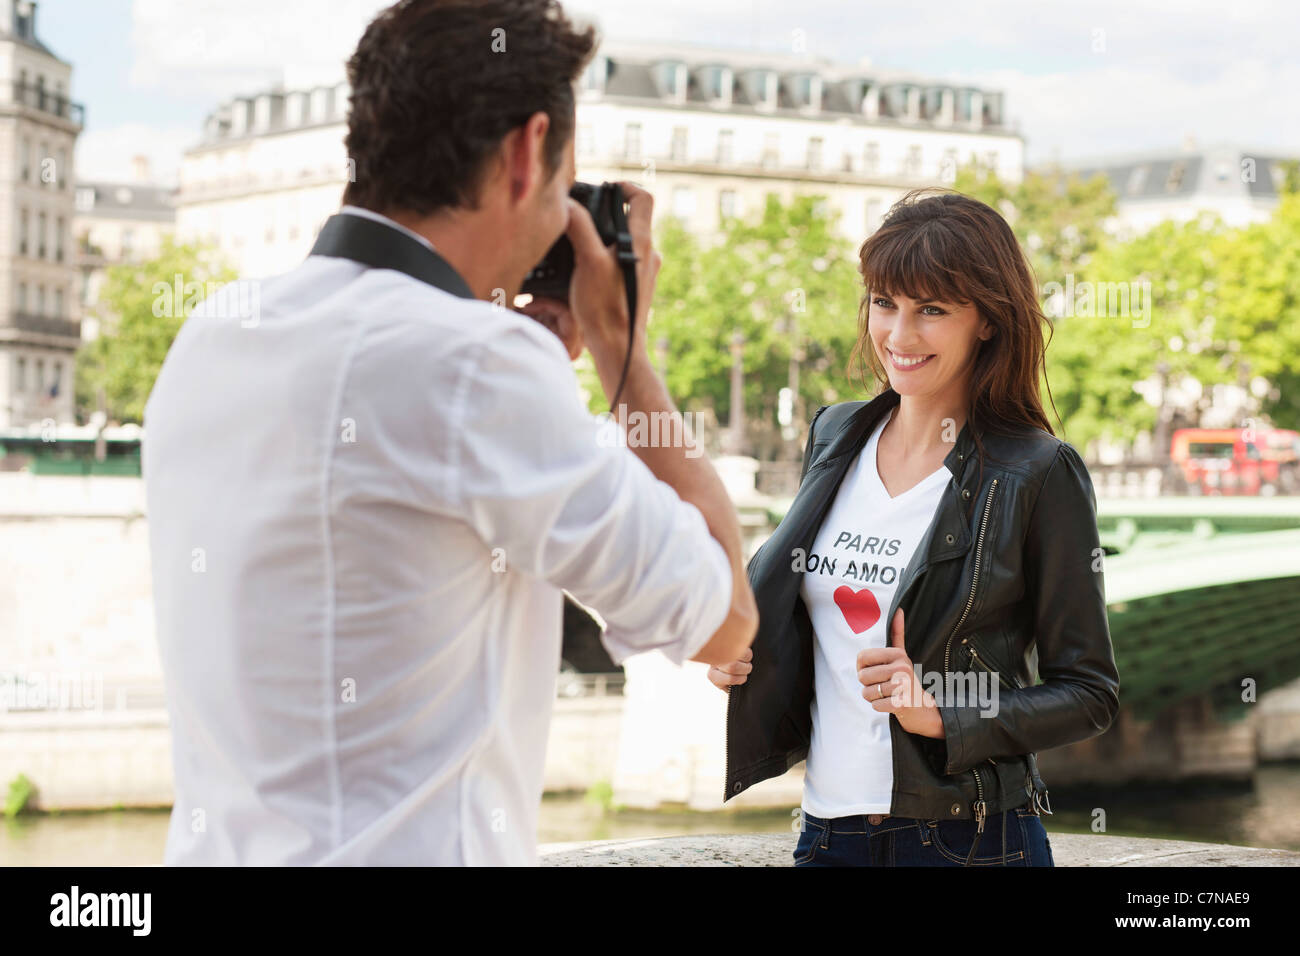 Man taking a picture of a woman with a camera, Seine River, Paris, Ile-de-France, France - Stock Image